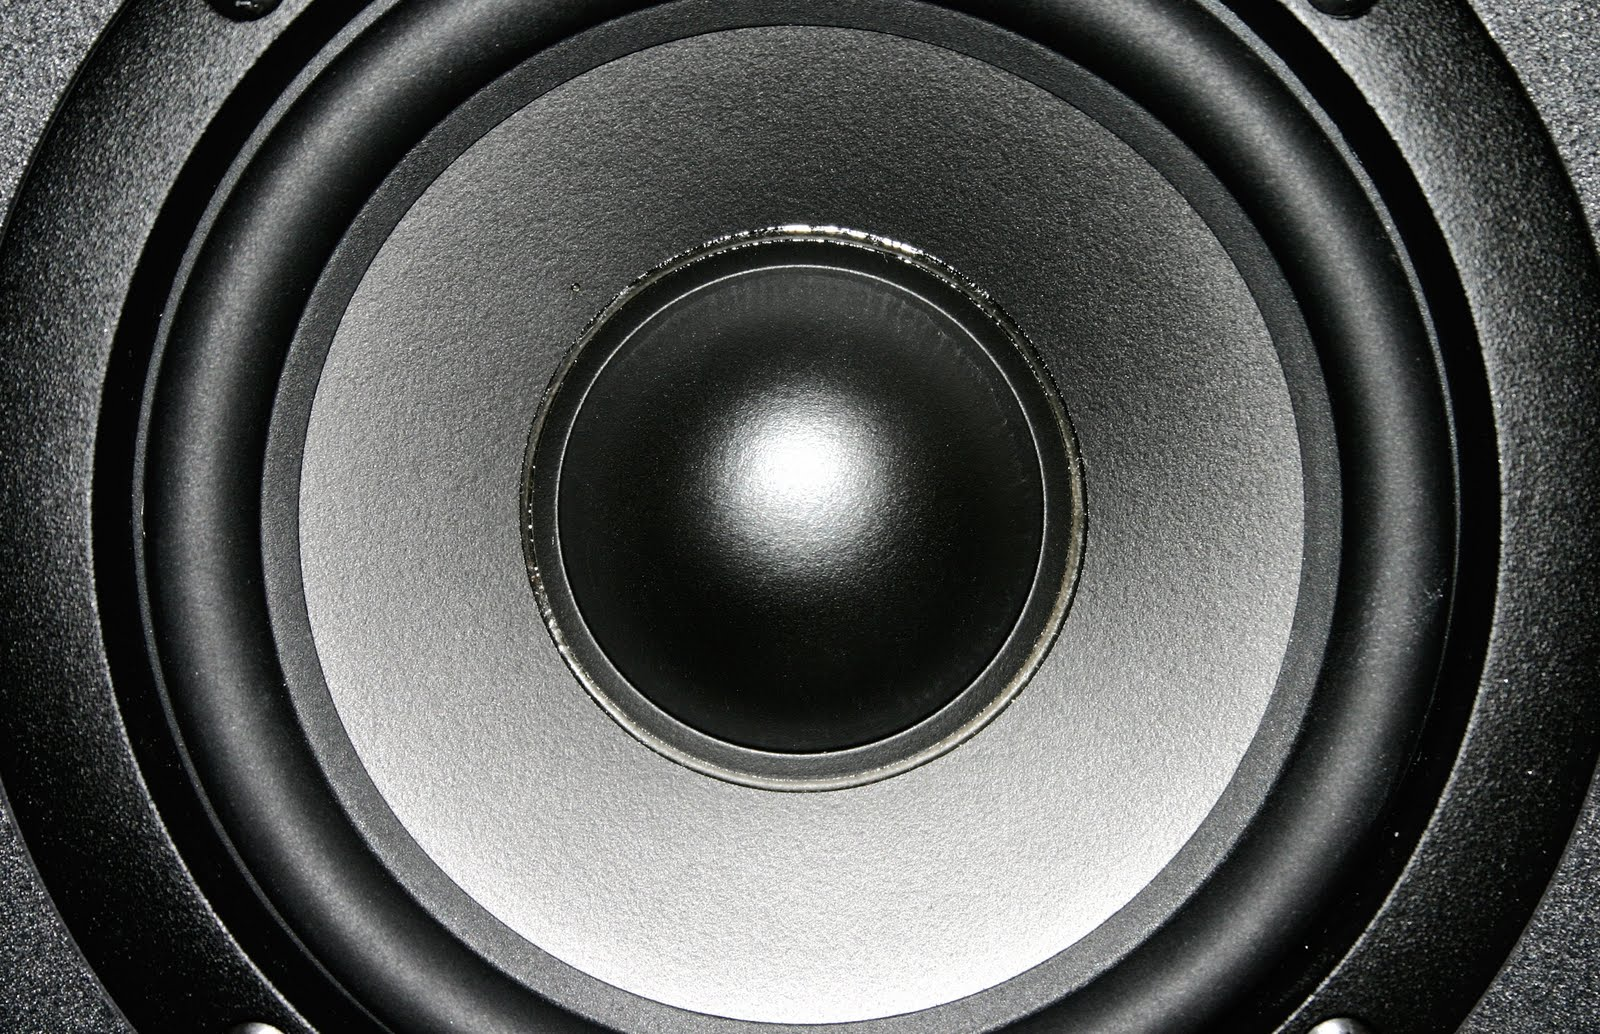 Stock photo of a speaker